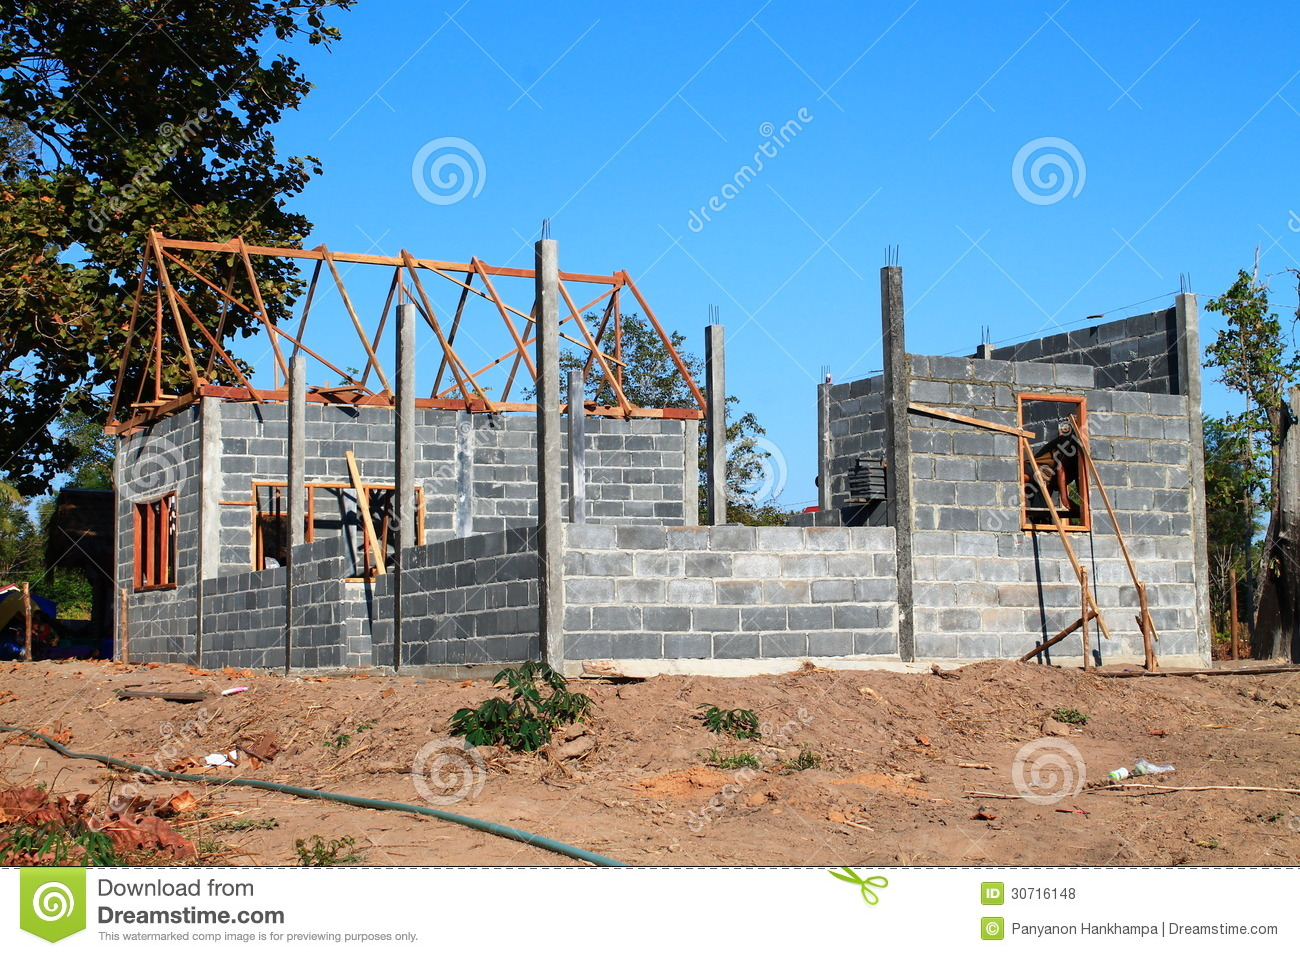 Your Dream Home New Residential Construction House